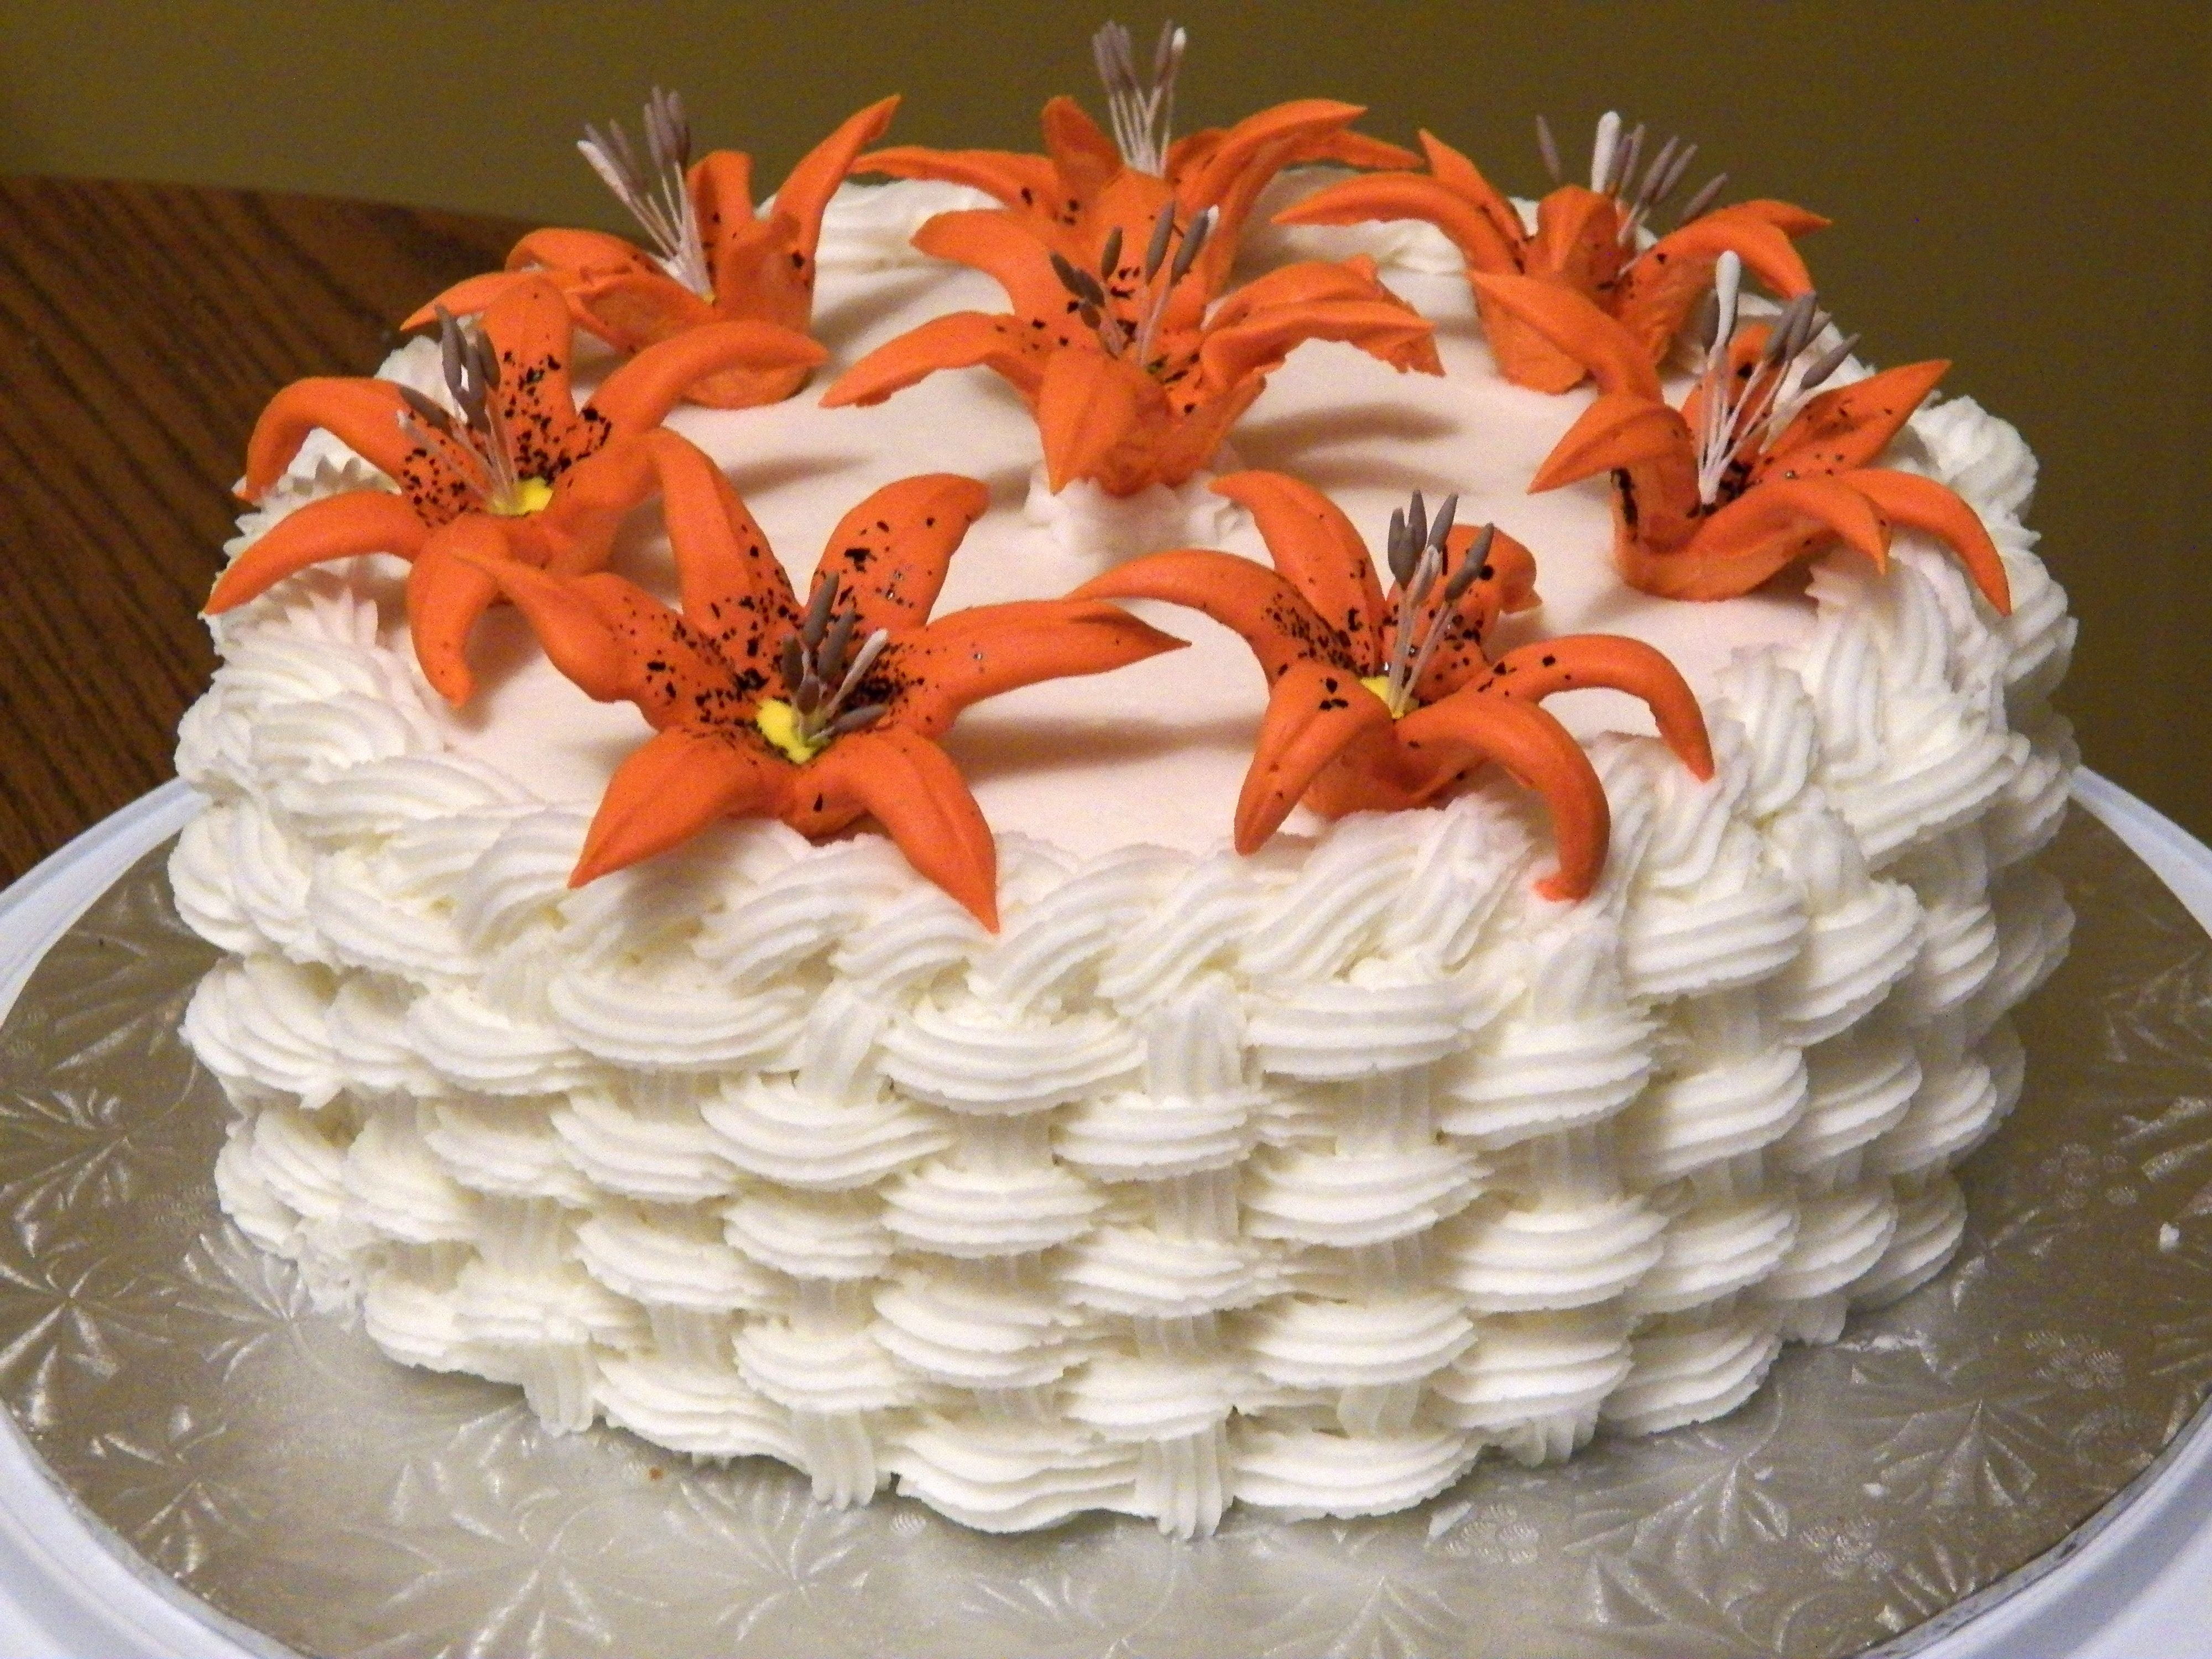 #wiltoncontest  Basket Weave Lily Cake  Final Cake: Wilton Course 2: Flower & Cake Design  Bulk Barn, Carleton Place, ON